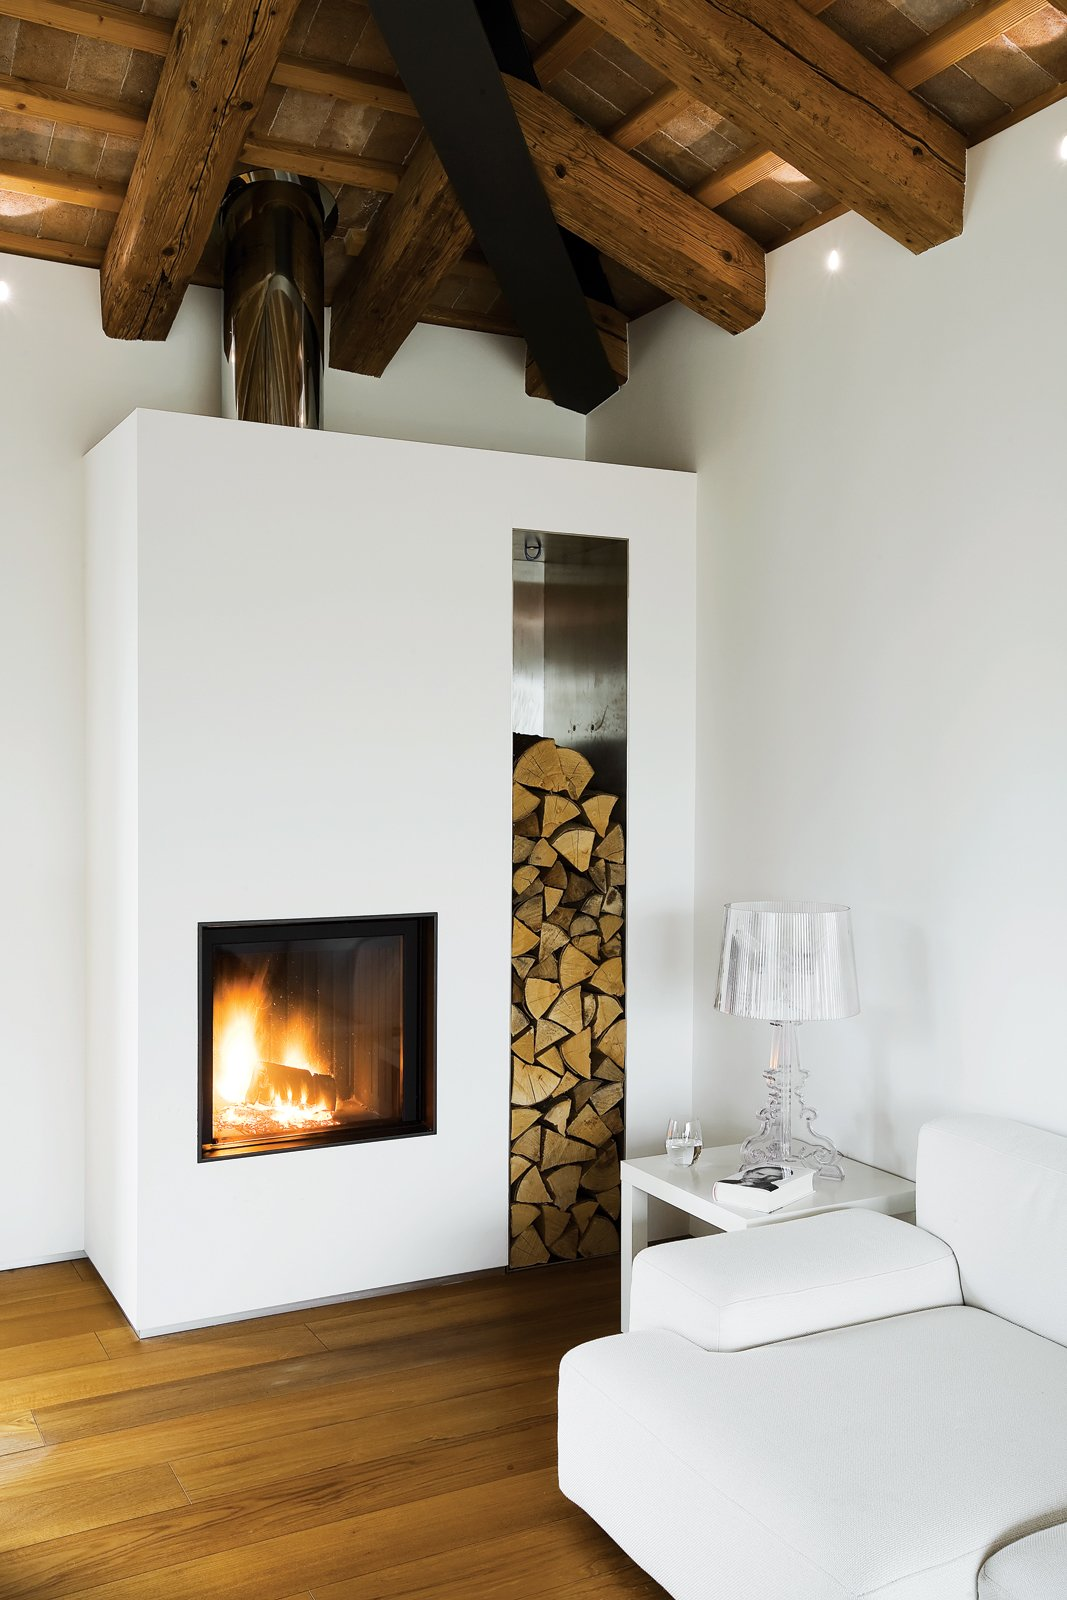 Living Room, Medium Hardwood Floor, End Tables, Sofa, Table Lighting, and Wood Burning Fireplace A firewood nice and hearth infuse the interior of a renovated farmhouse in Italy with coziness. Photo by Helenio Barbetta.  Photo 4 of 10 in 10 Cozy Spaces and 15 Products to Help You Get Ready For Fall from A Renovated Farmhouse in Northern Italy